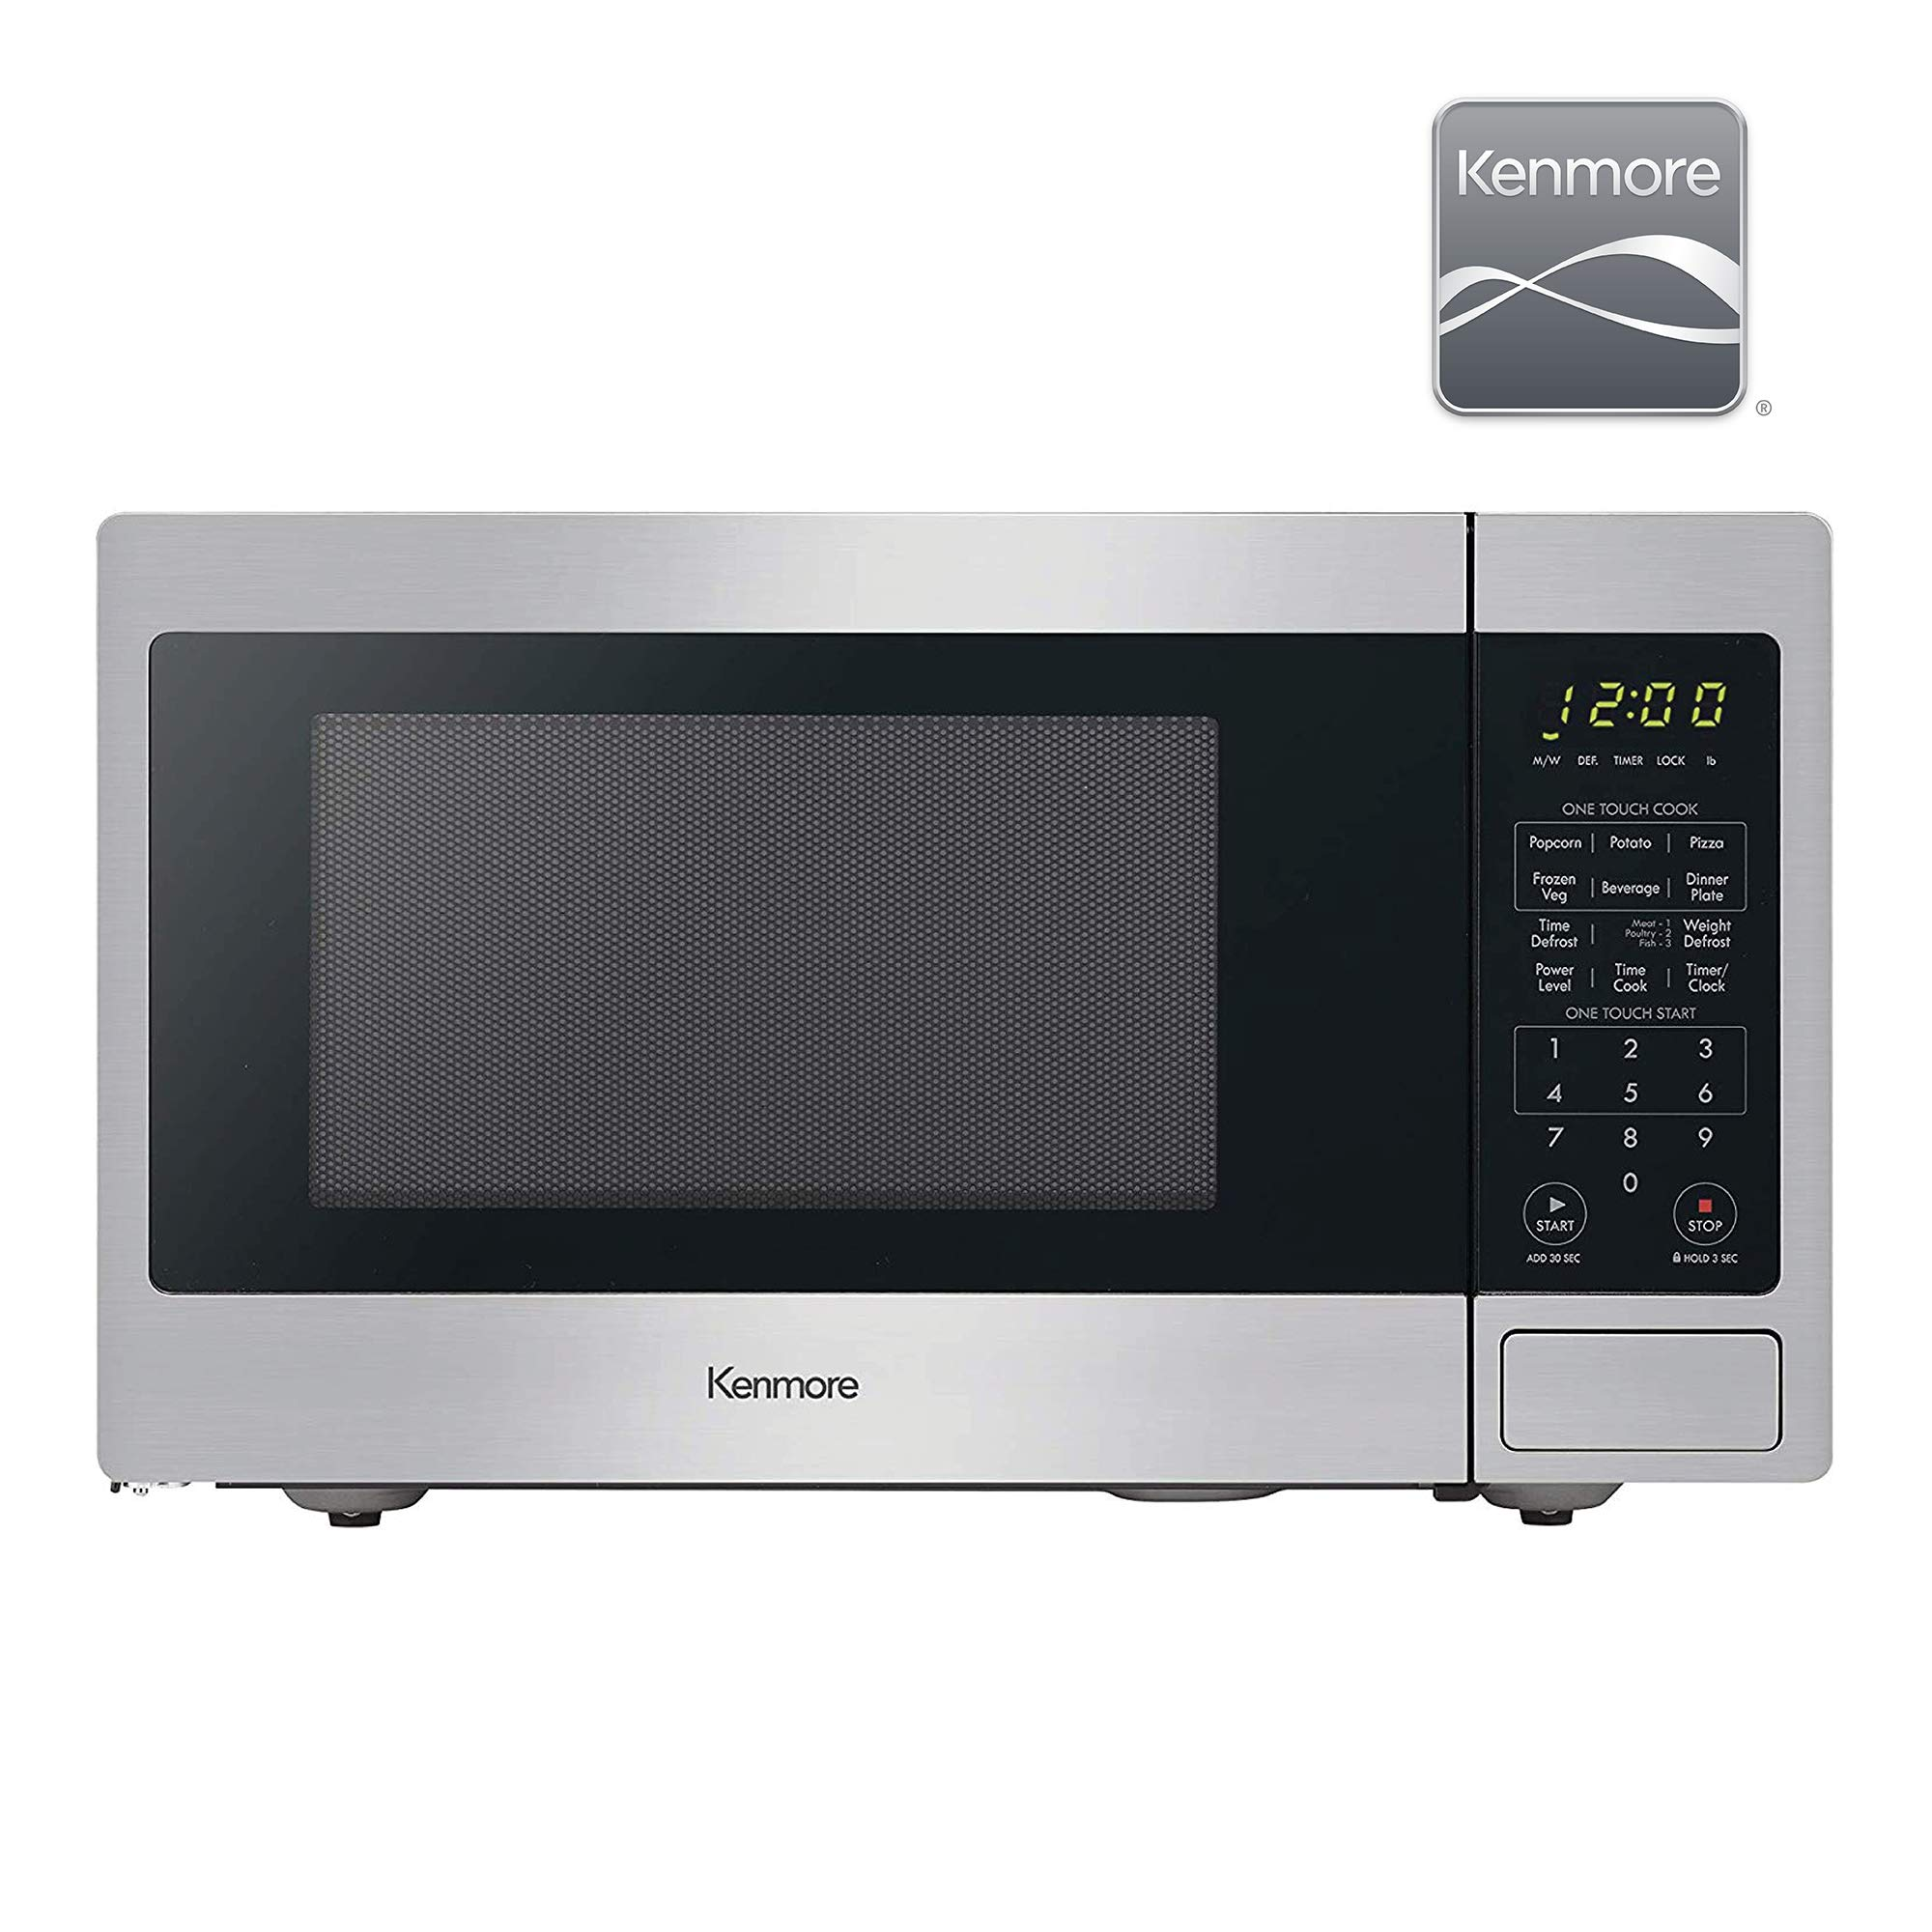 kenmore 70913 countertop microwave oven 0 9 cu ft stainless steel